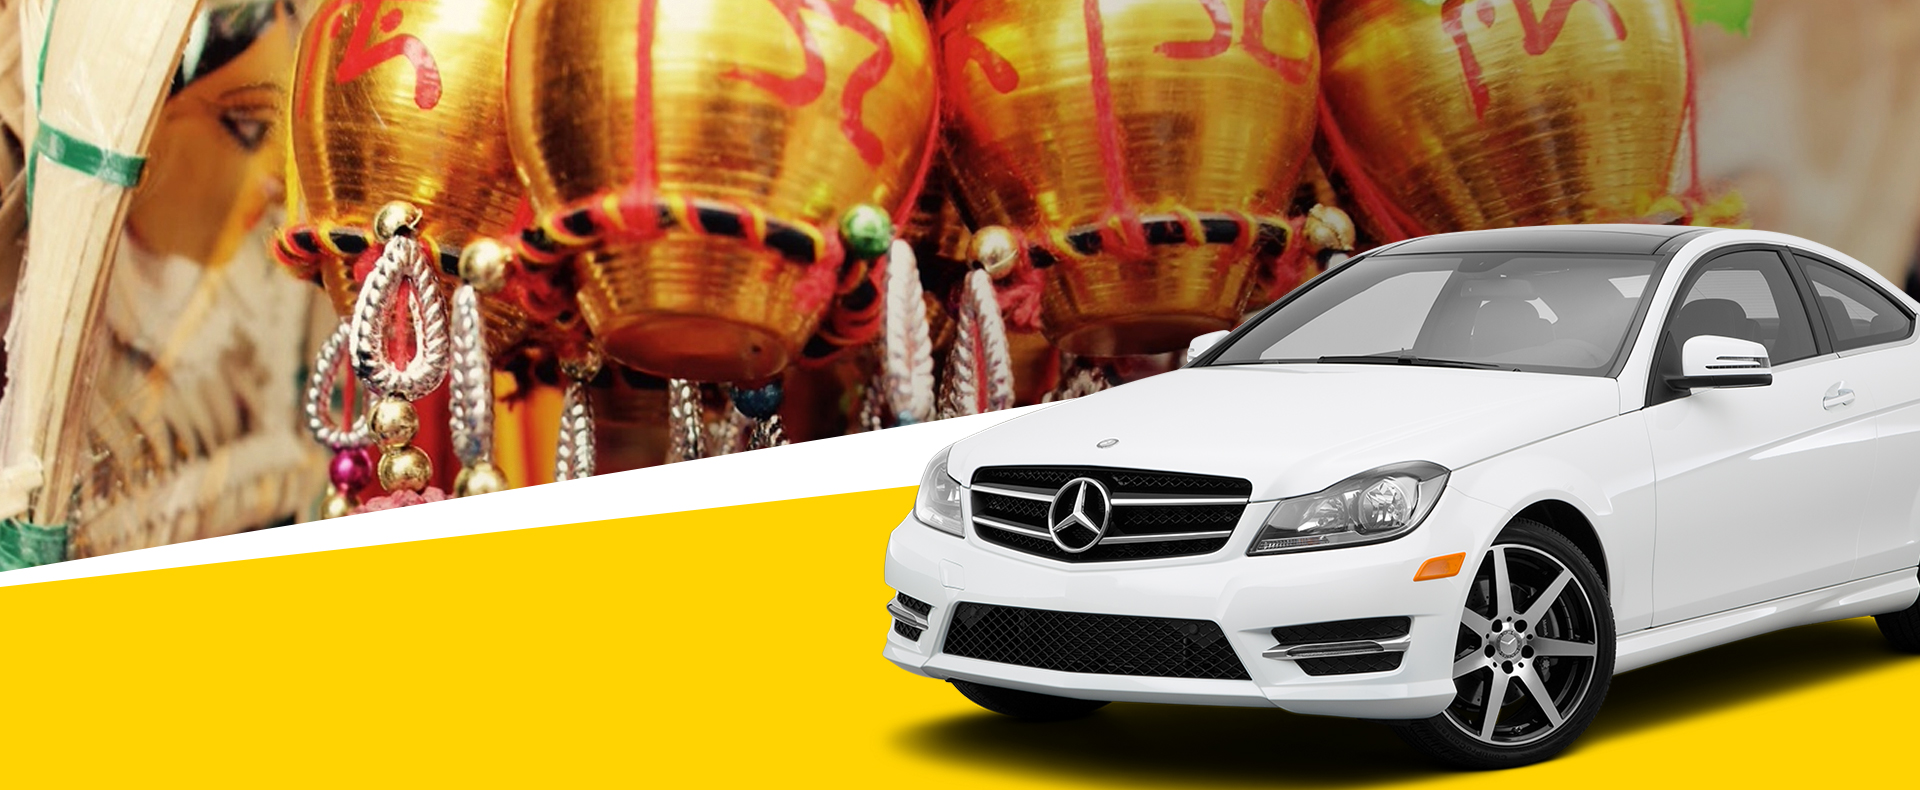 Kolkata Taxi Service | Taxi Service in Kolkata | Taxi Service In ...